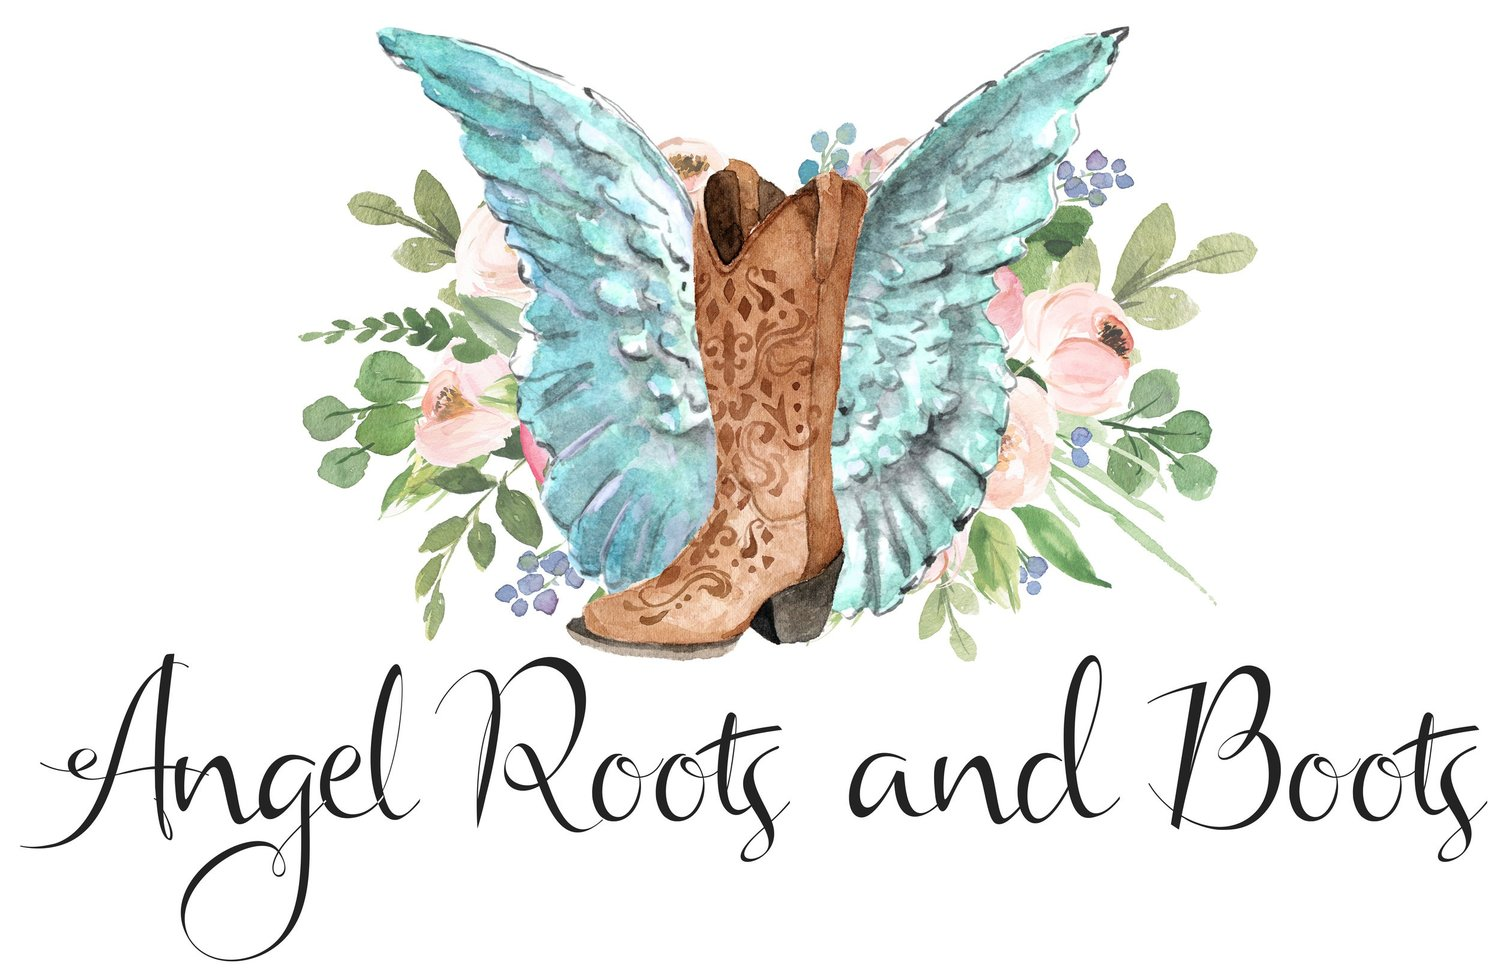 Angel Roots and Boots